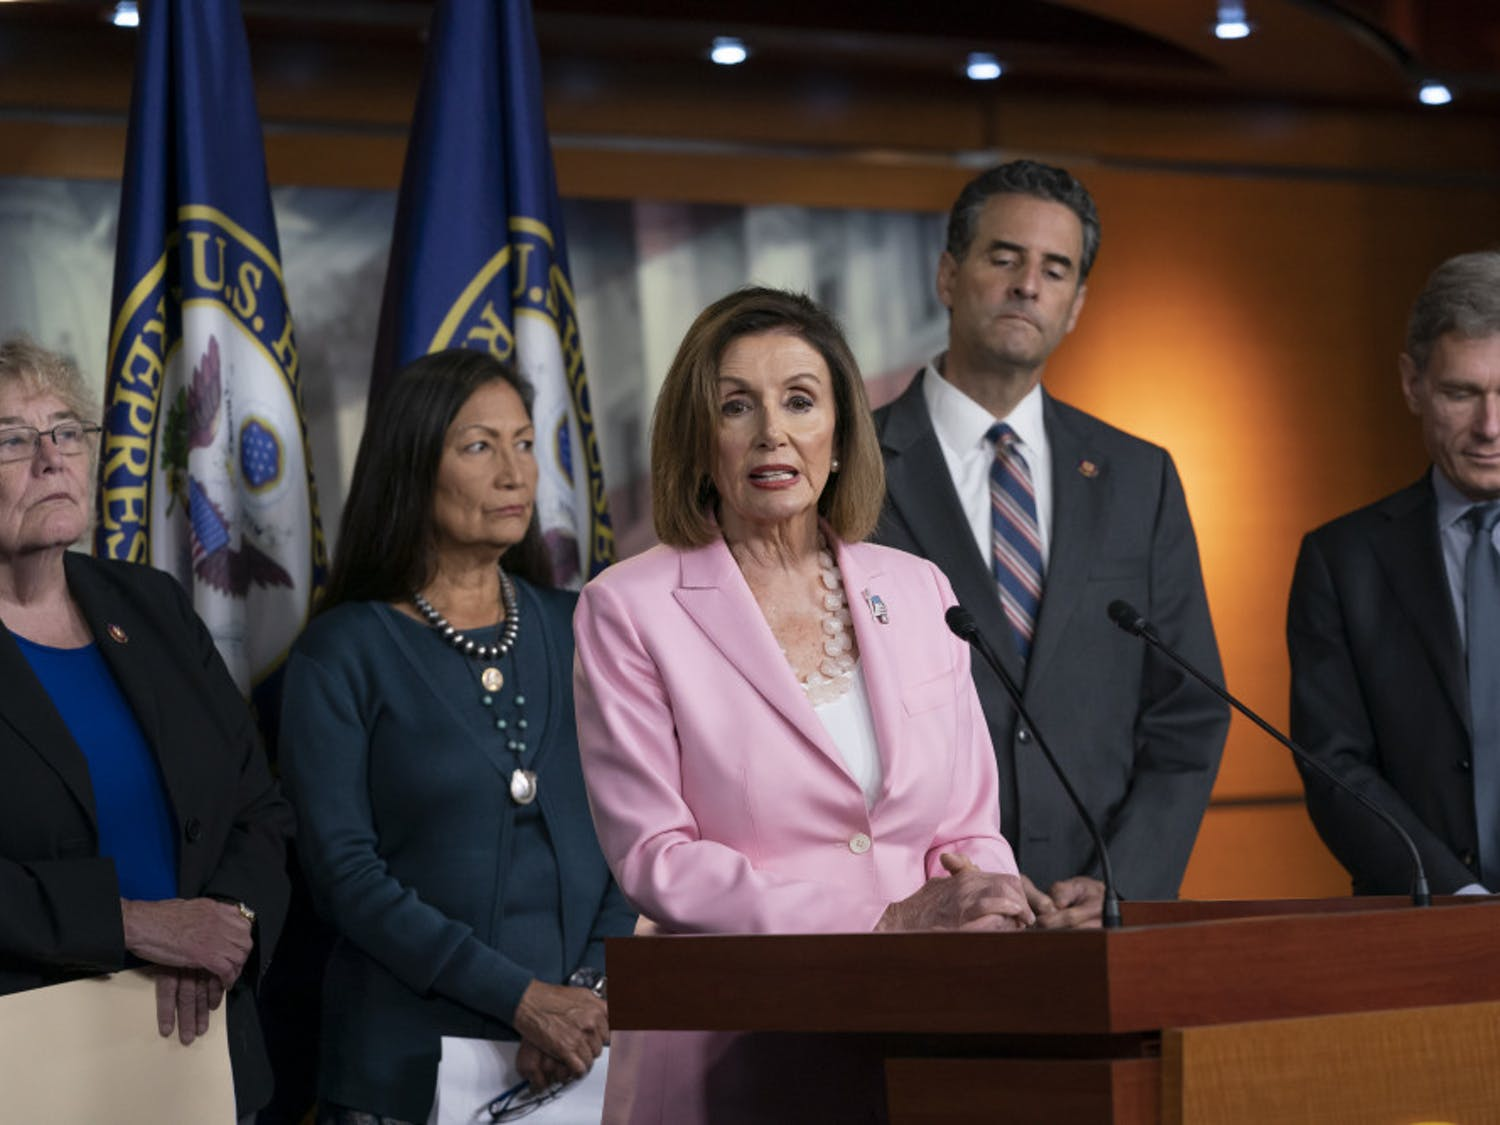 Speaker of the House Nancy Pelosi, D-Calif., leads other House Democrats to discuss H.R. 1, The For the People Act, which passed in the House but is being held up in the Senate, at the Capitol in Washington, Friday, Sept. 27, 2019. From left are, Rep. Zoe Lofgren, D-Calif., a member of the House Judiciary Committee, Rep. Deb Haaland, D-N.M., Rep. John Sarbanes, D-Md., and Rep. Tom Malinowski, D-N.J. (AP Photo/J. Scott Applewhite)